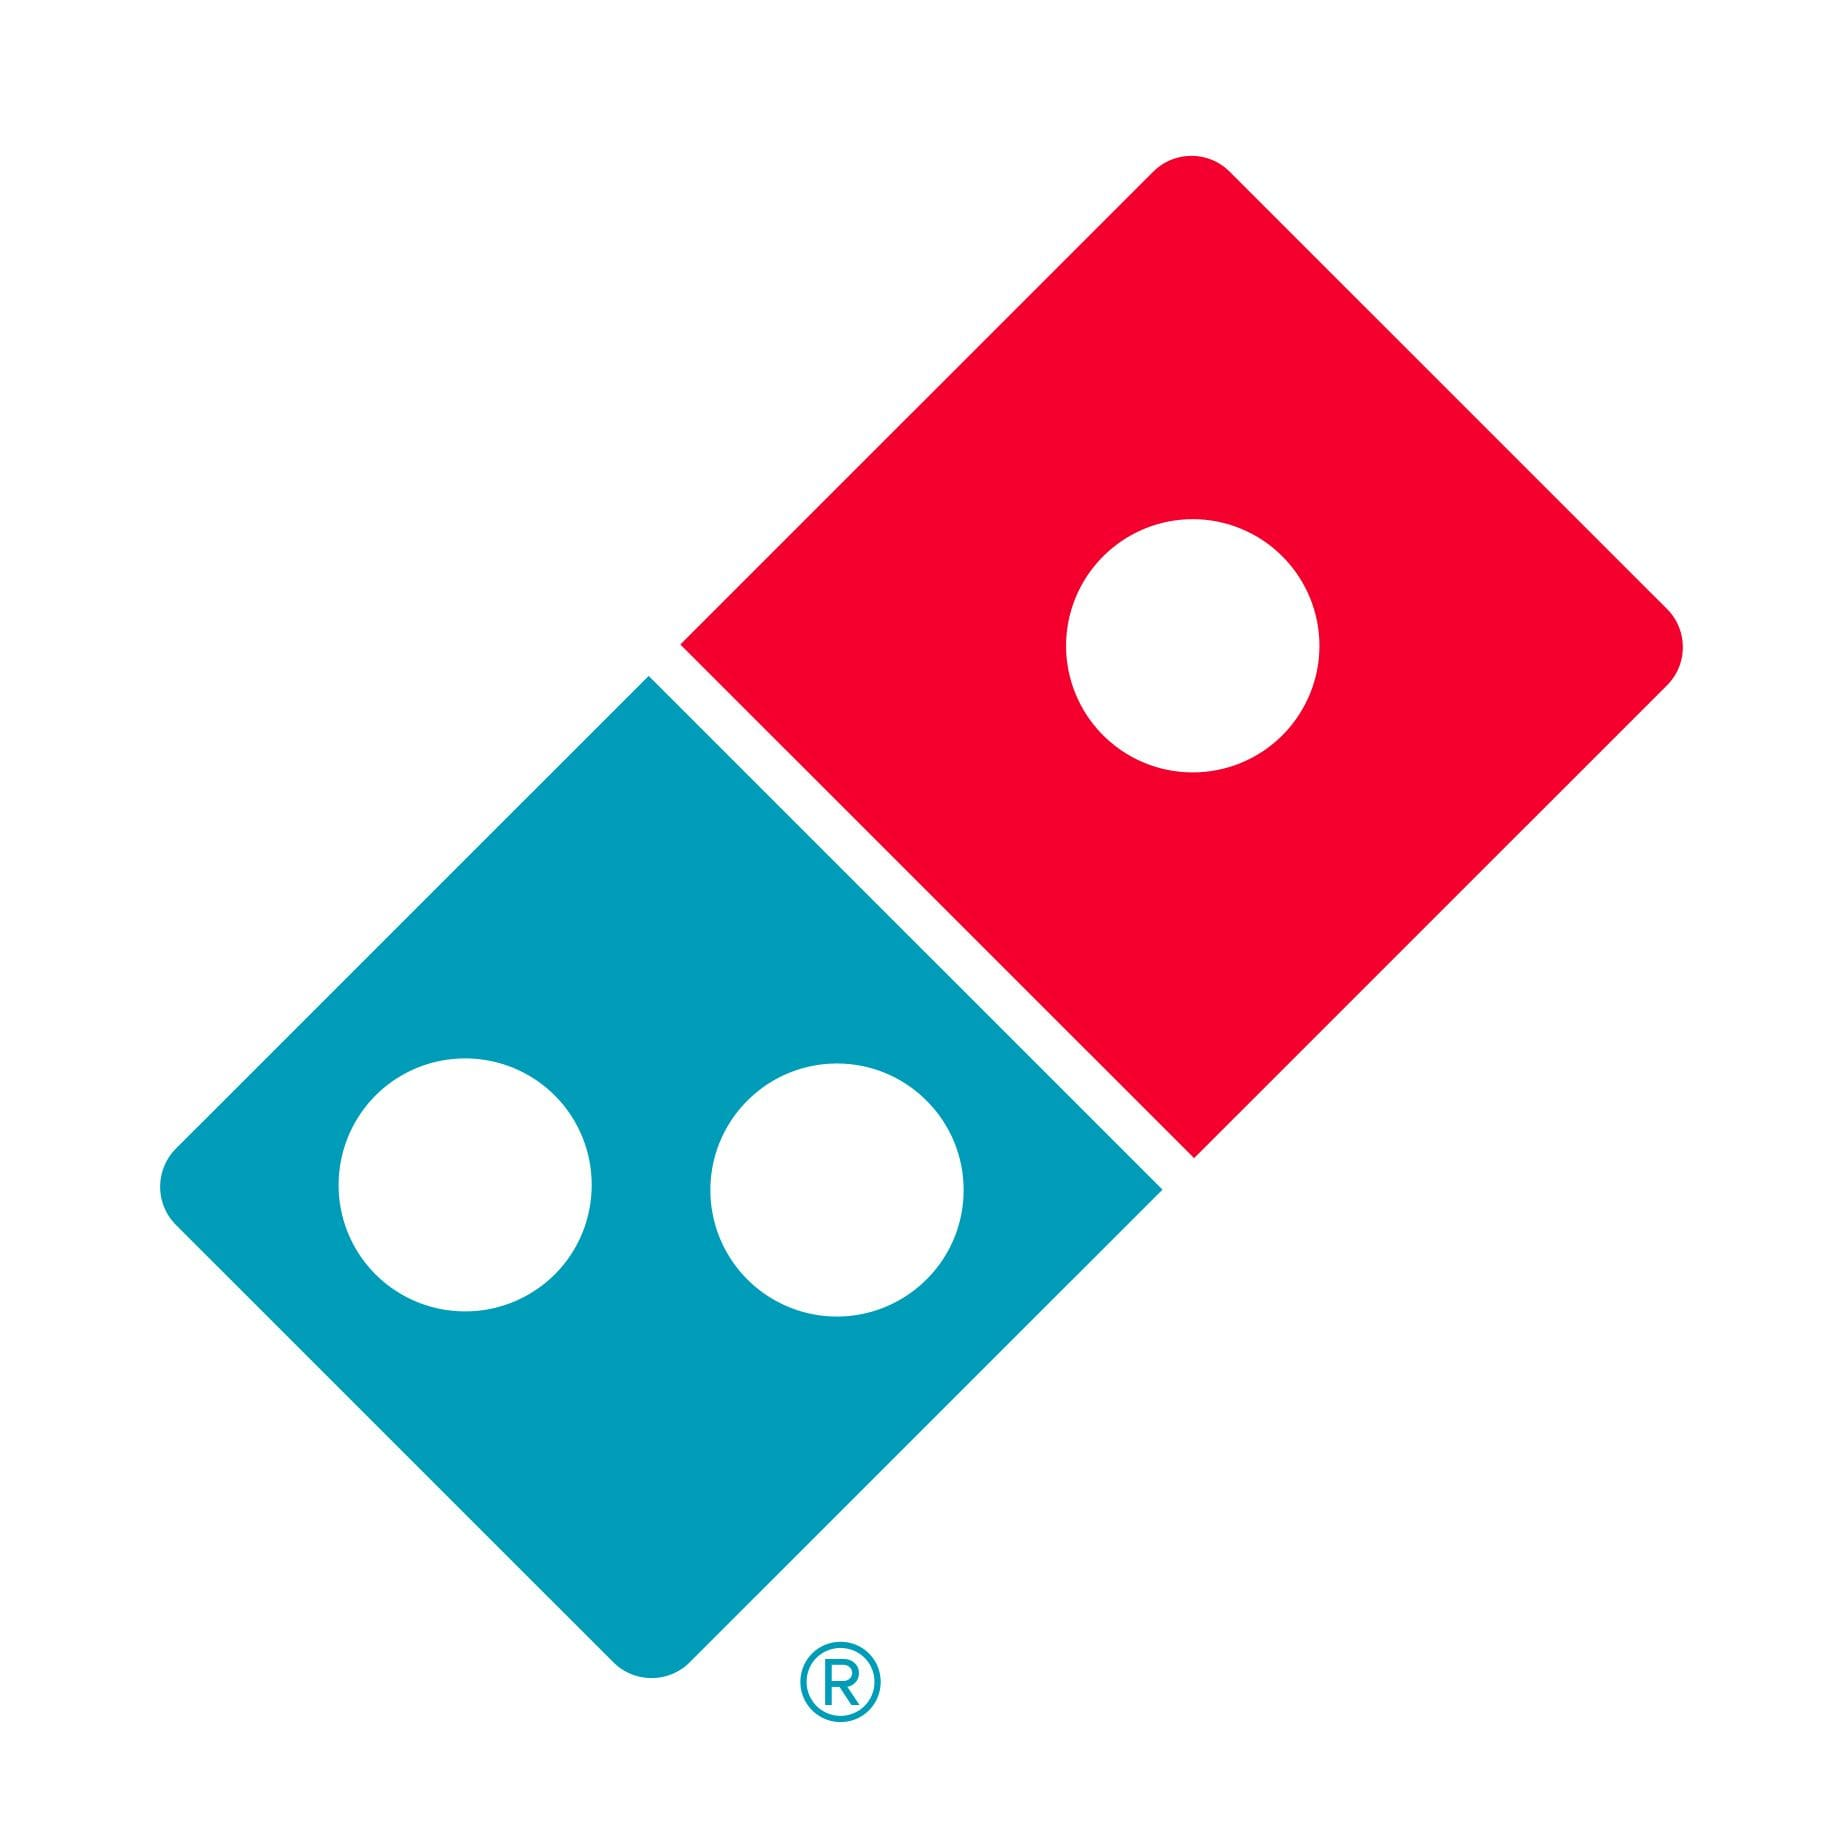 Domino's Keilor, VIC - EXISTING STORE OPPORTUNITY!